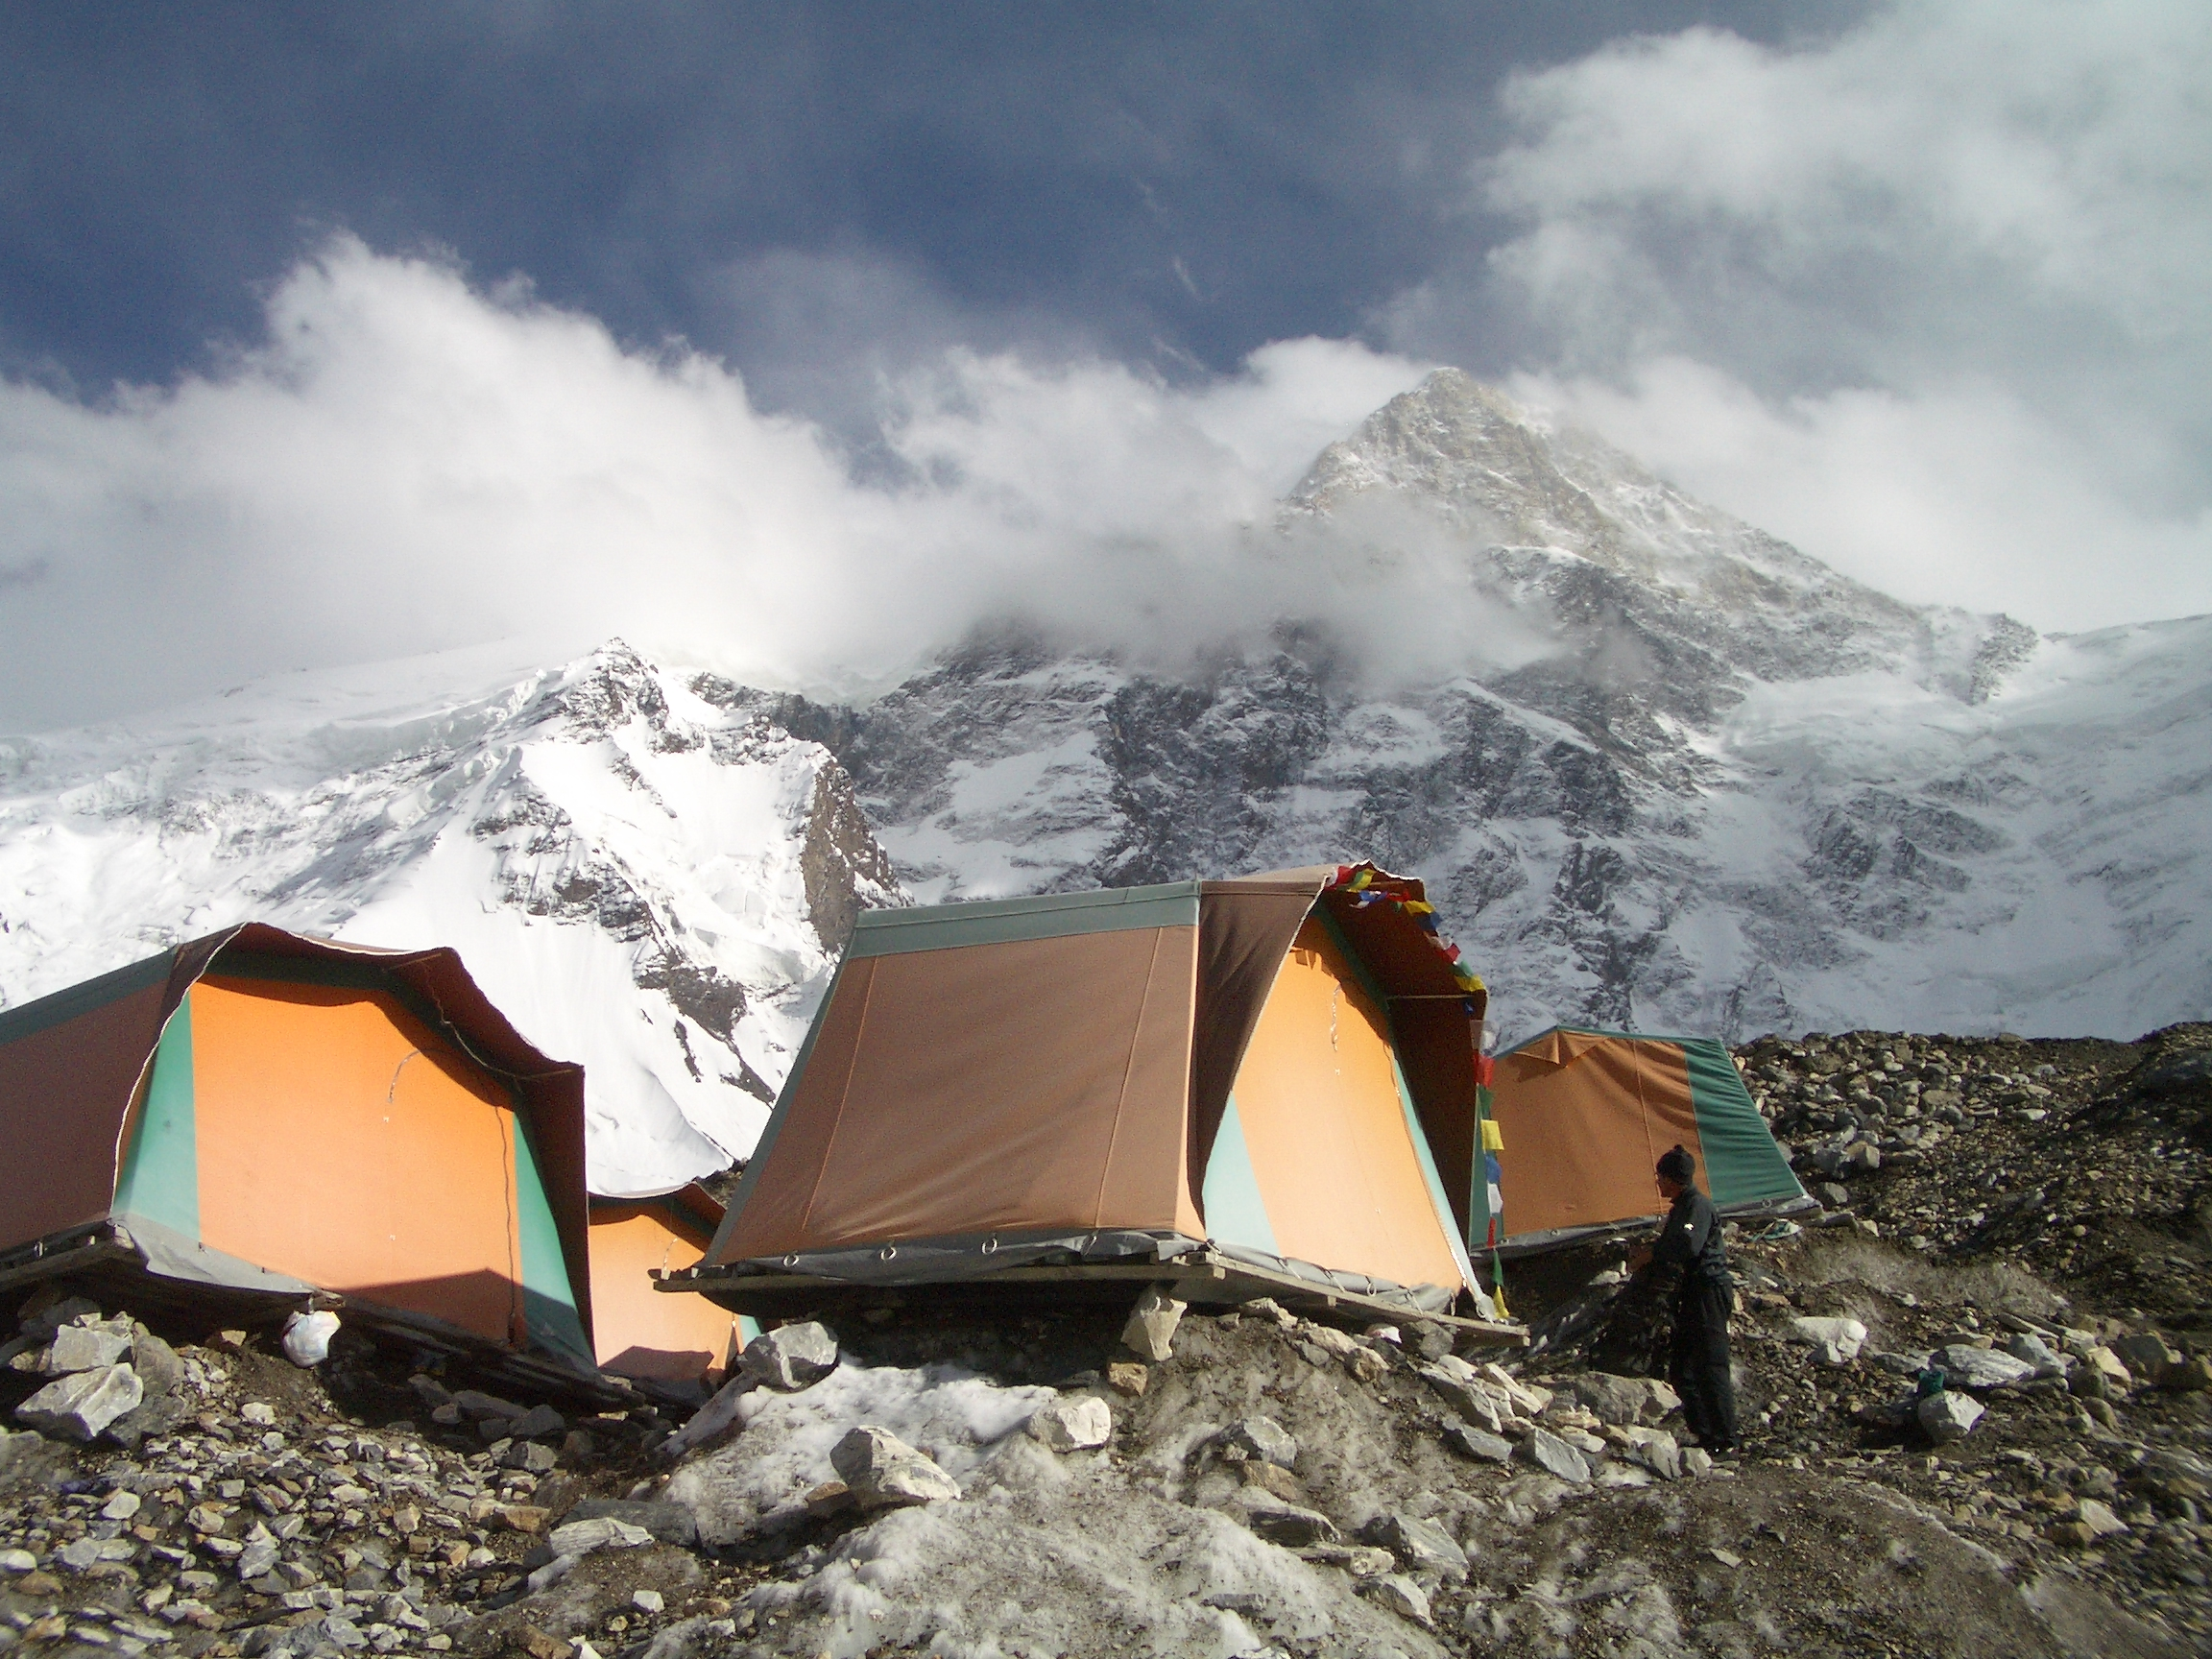 The tents on the glacier at basecamp, Khan Tengri